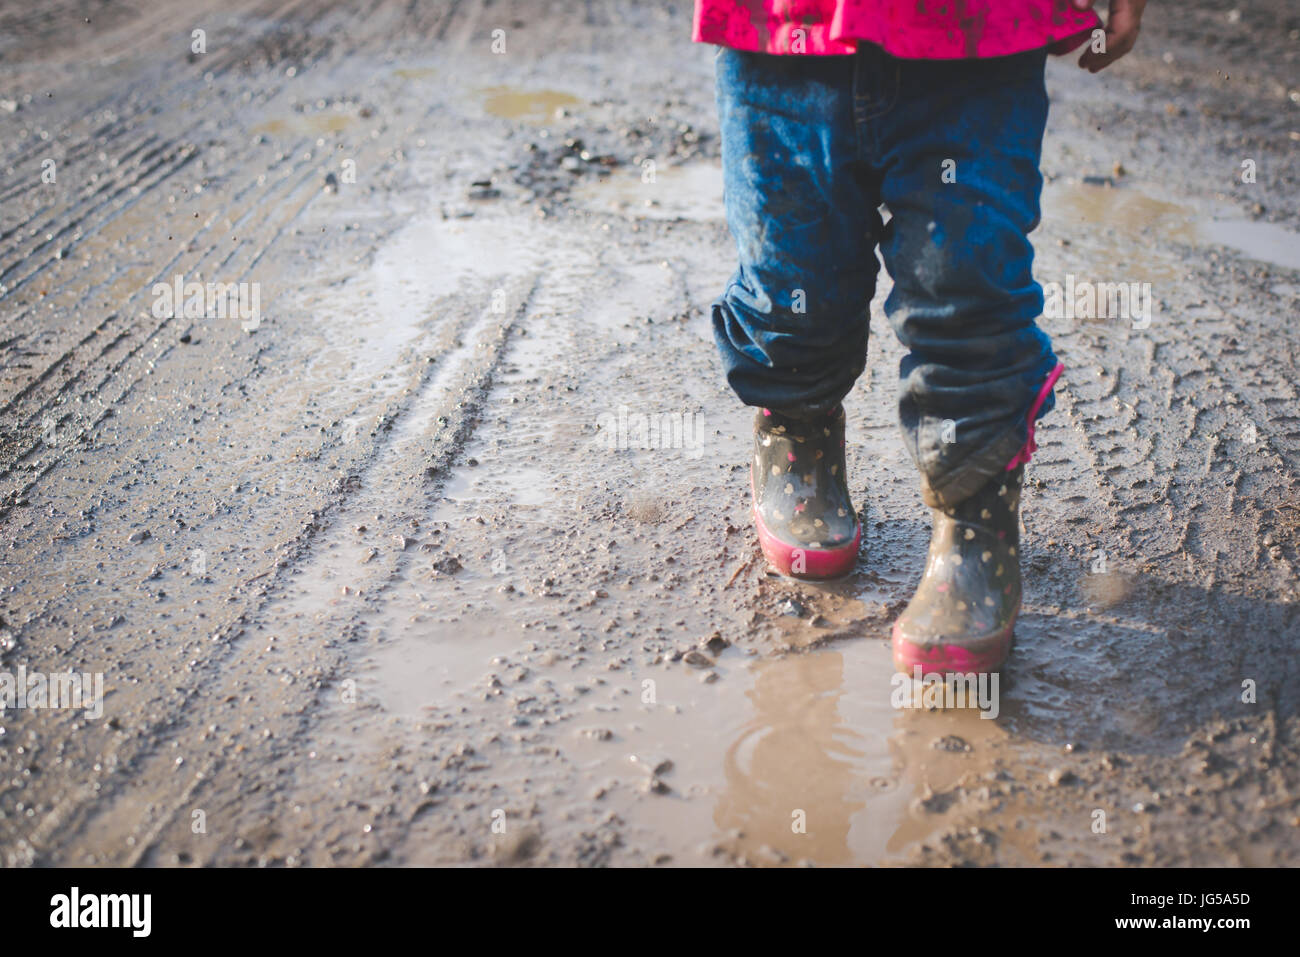 A child walks in the mud along a country road in Pennsylvania. - Stock Image